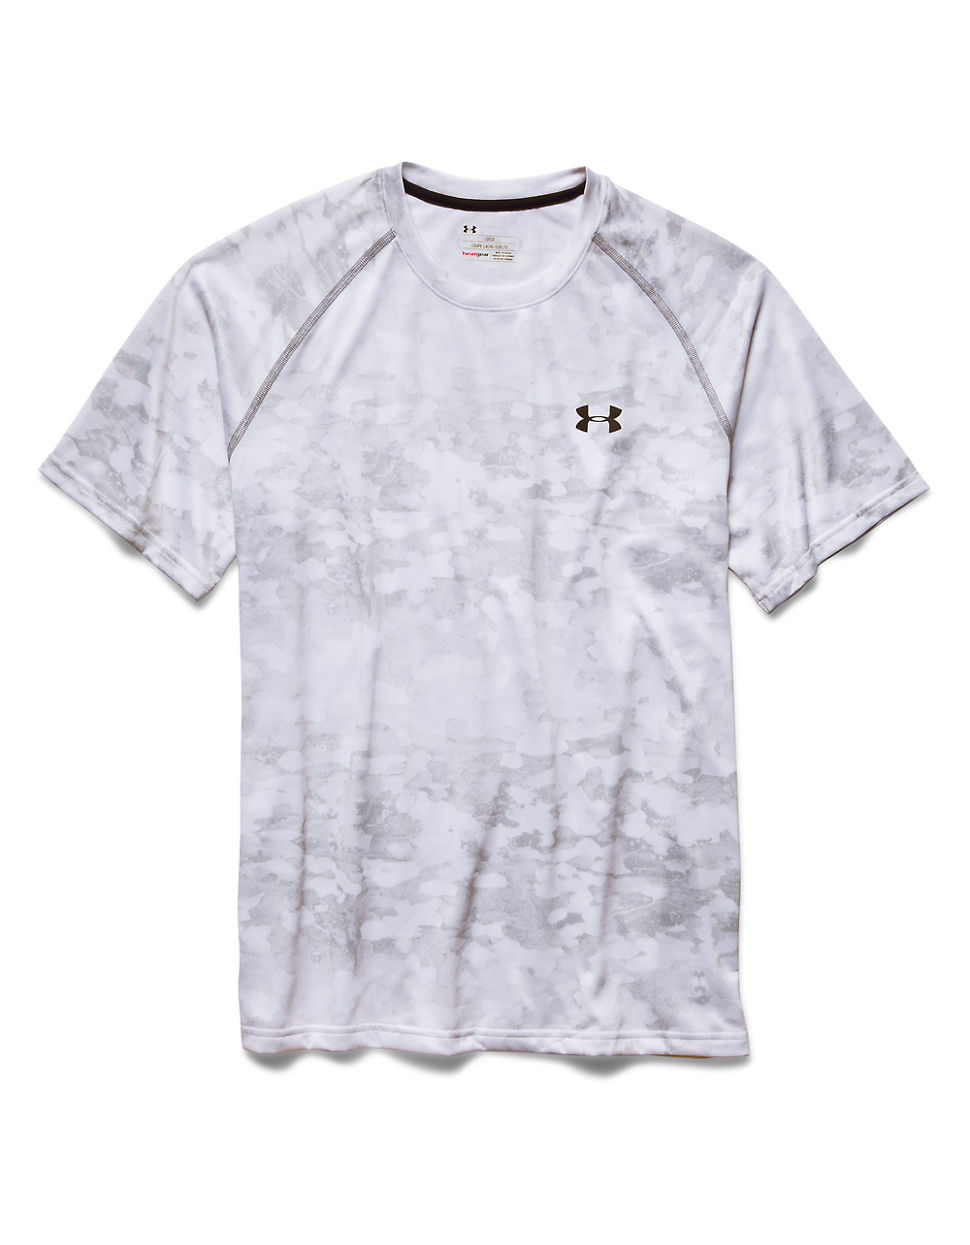 Lyst under armour tech camo print t shirt in white for men for Under armour printed t shirts